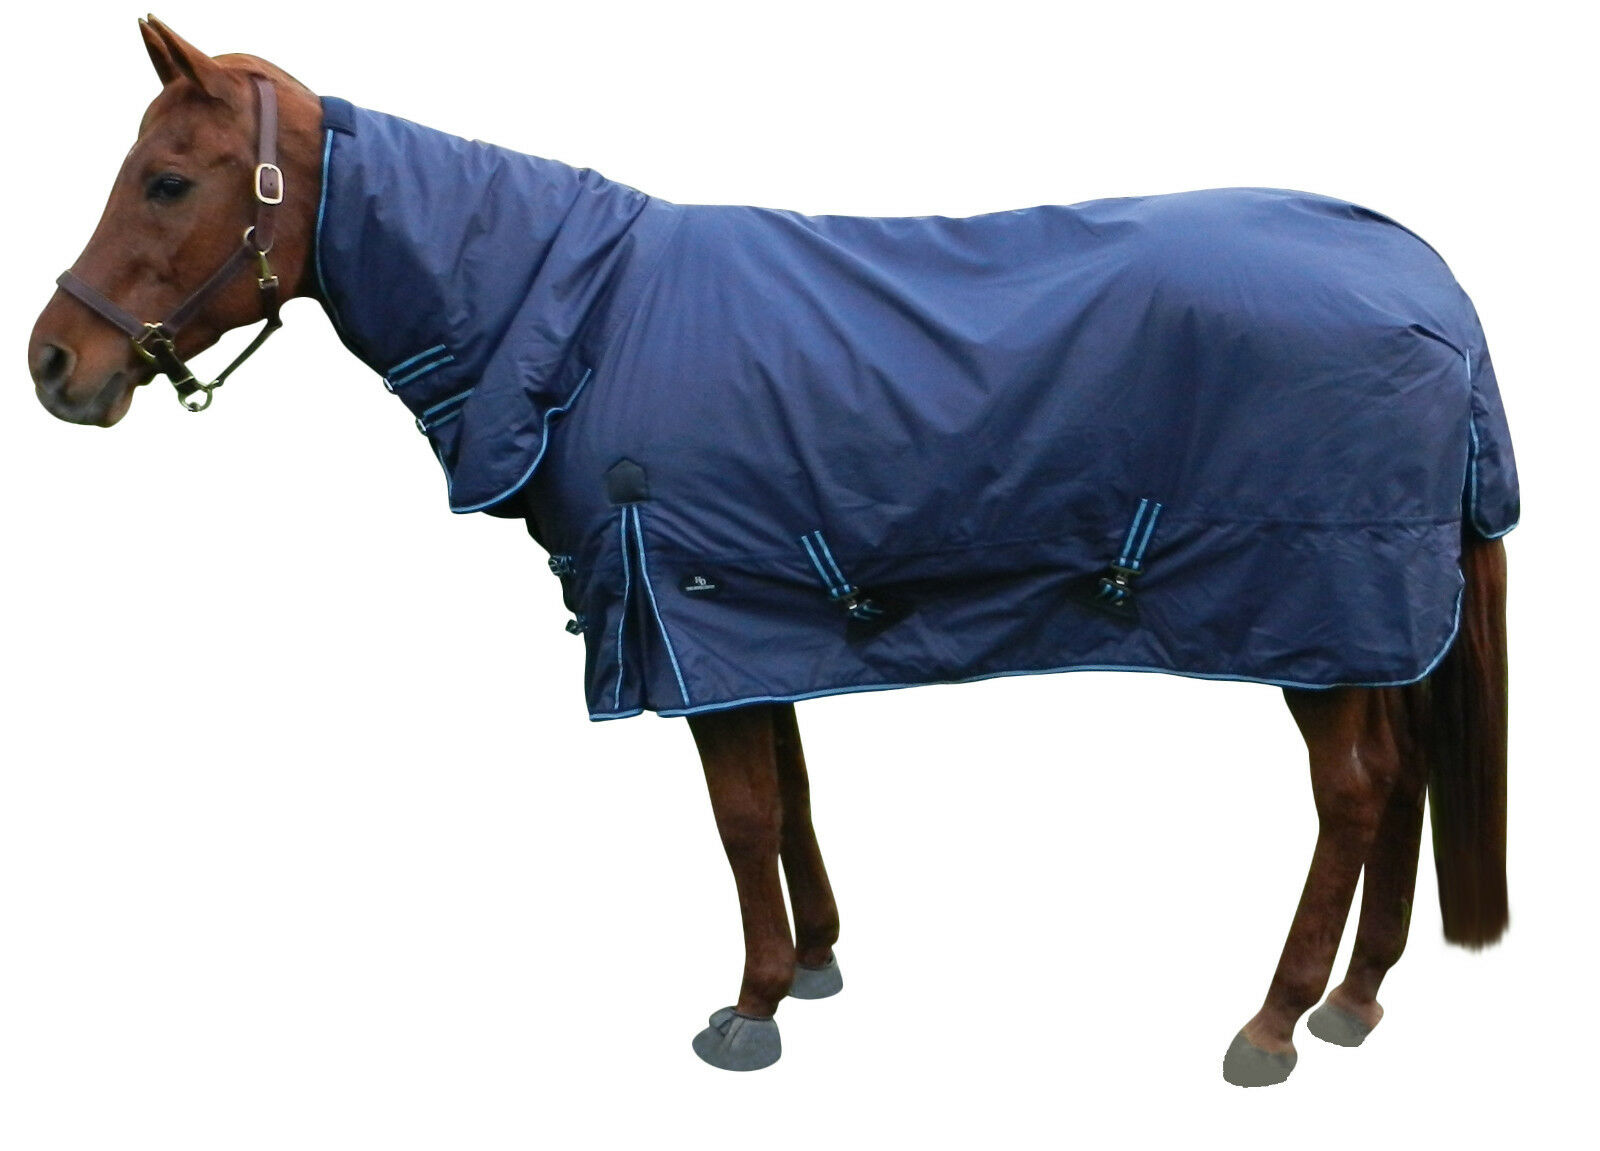 New  Waterproof Turnout Horse Blanket W Neck Cover 78